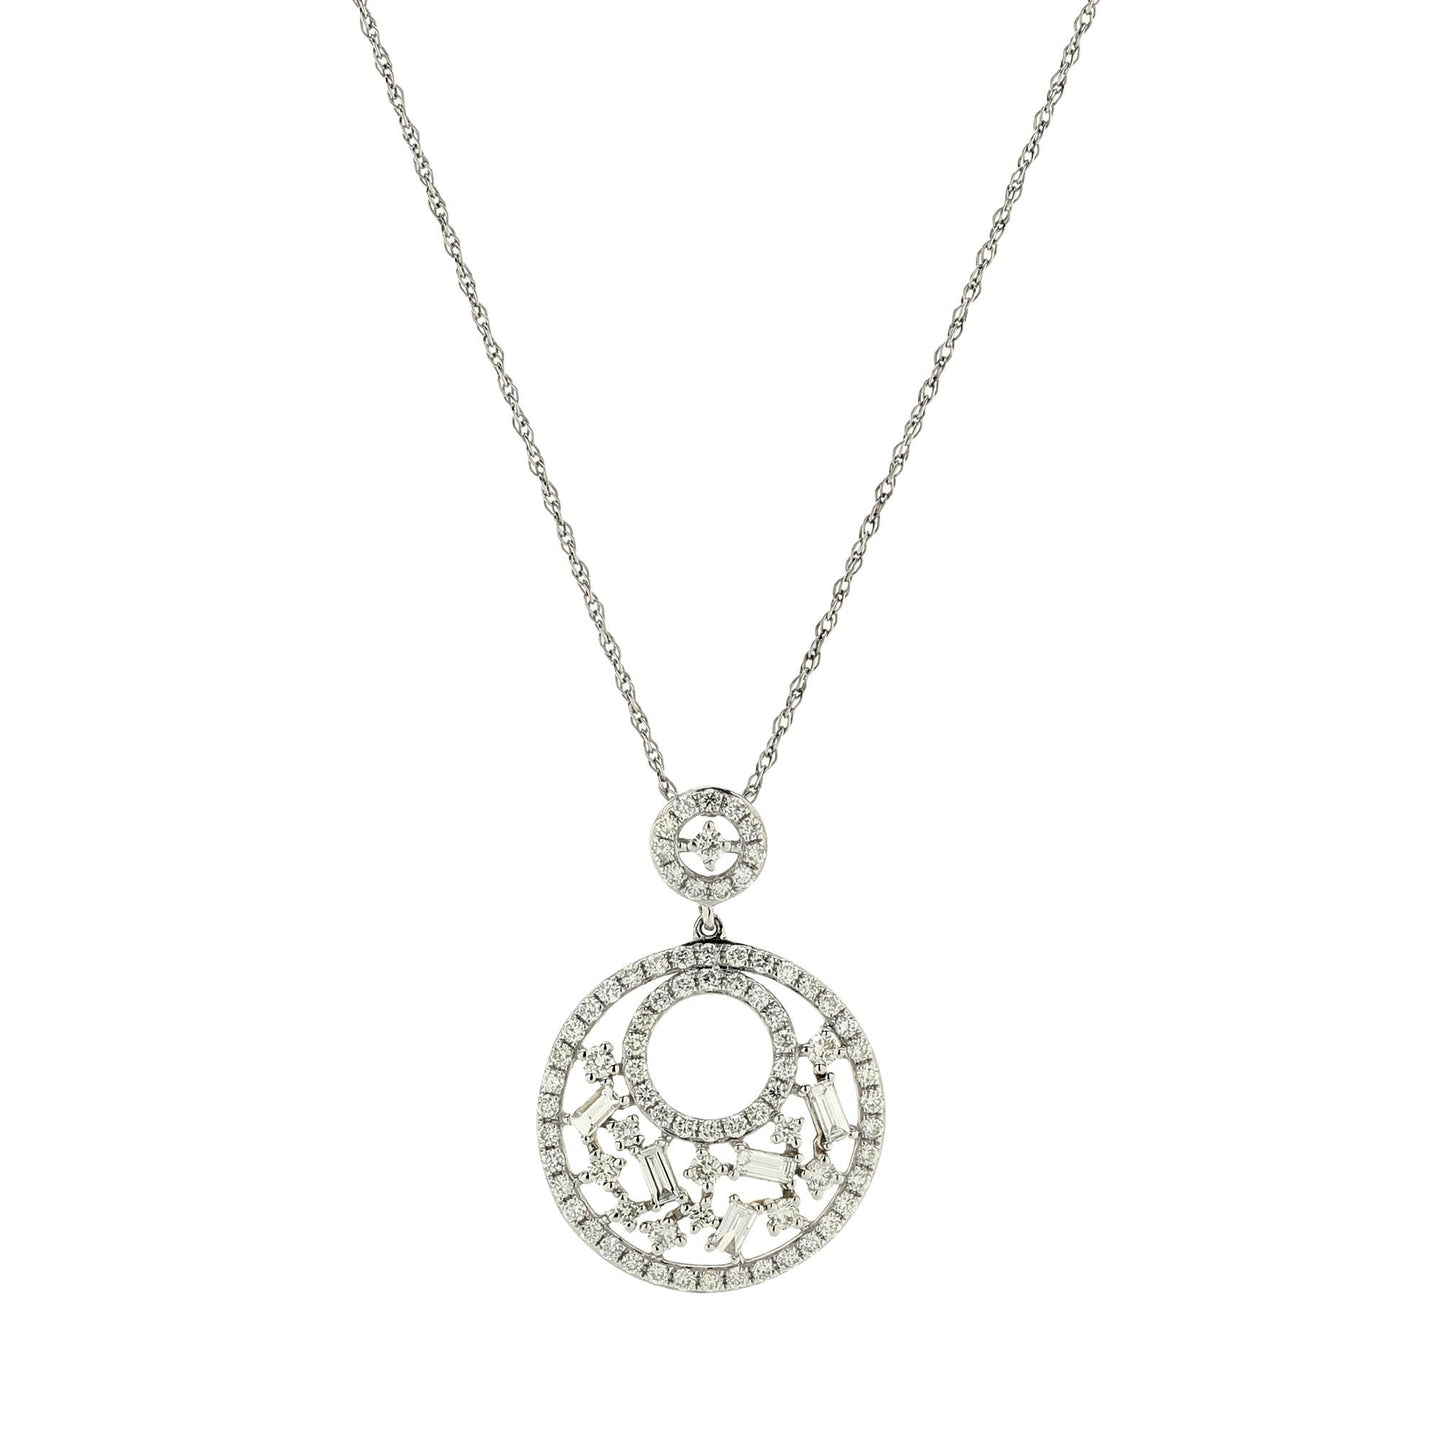 Sabel Collection 14K White Gold Round and Baguette Cutout Circle Pendant